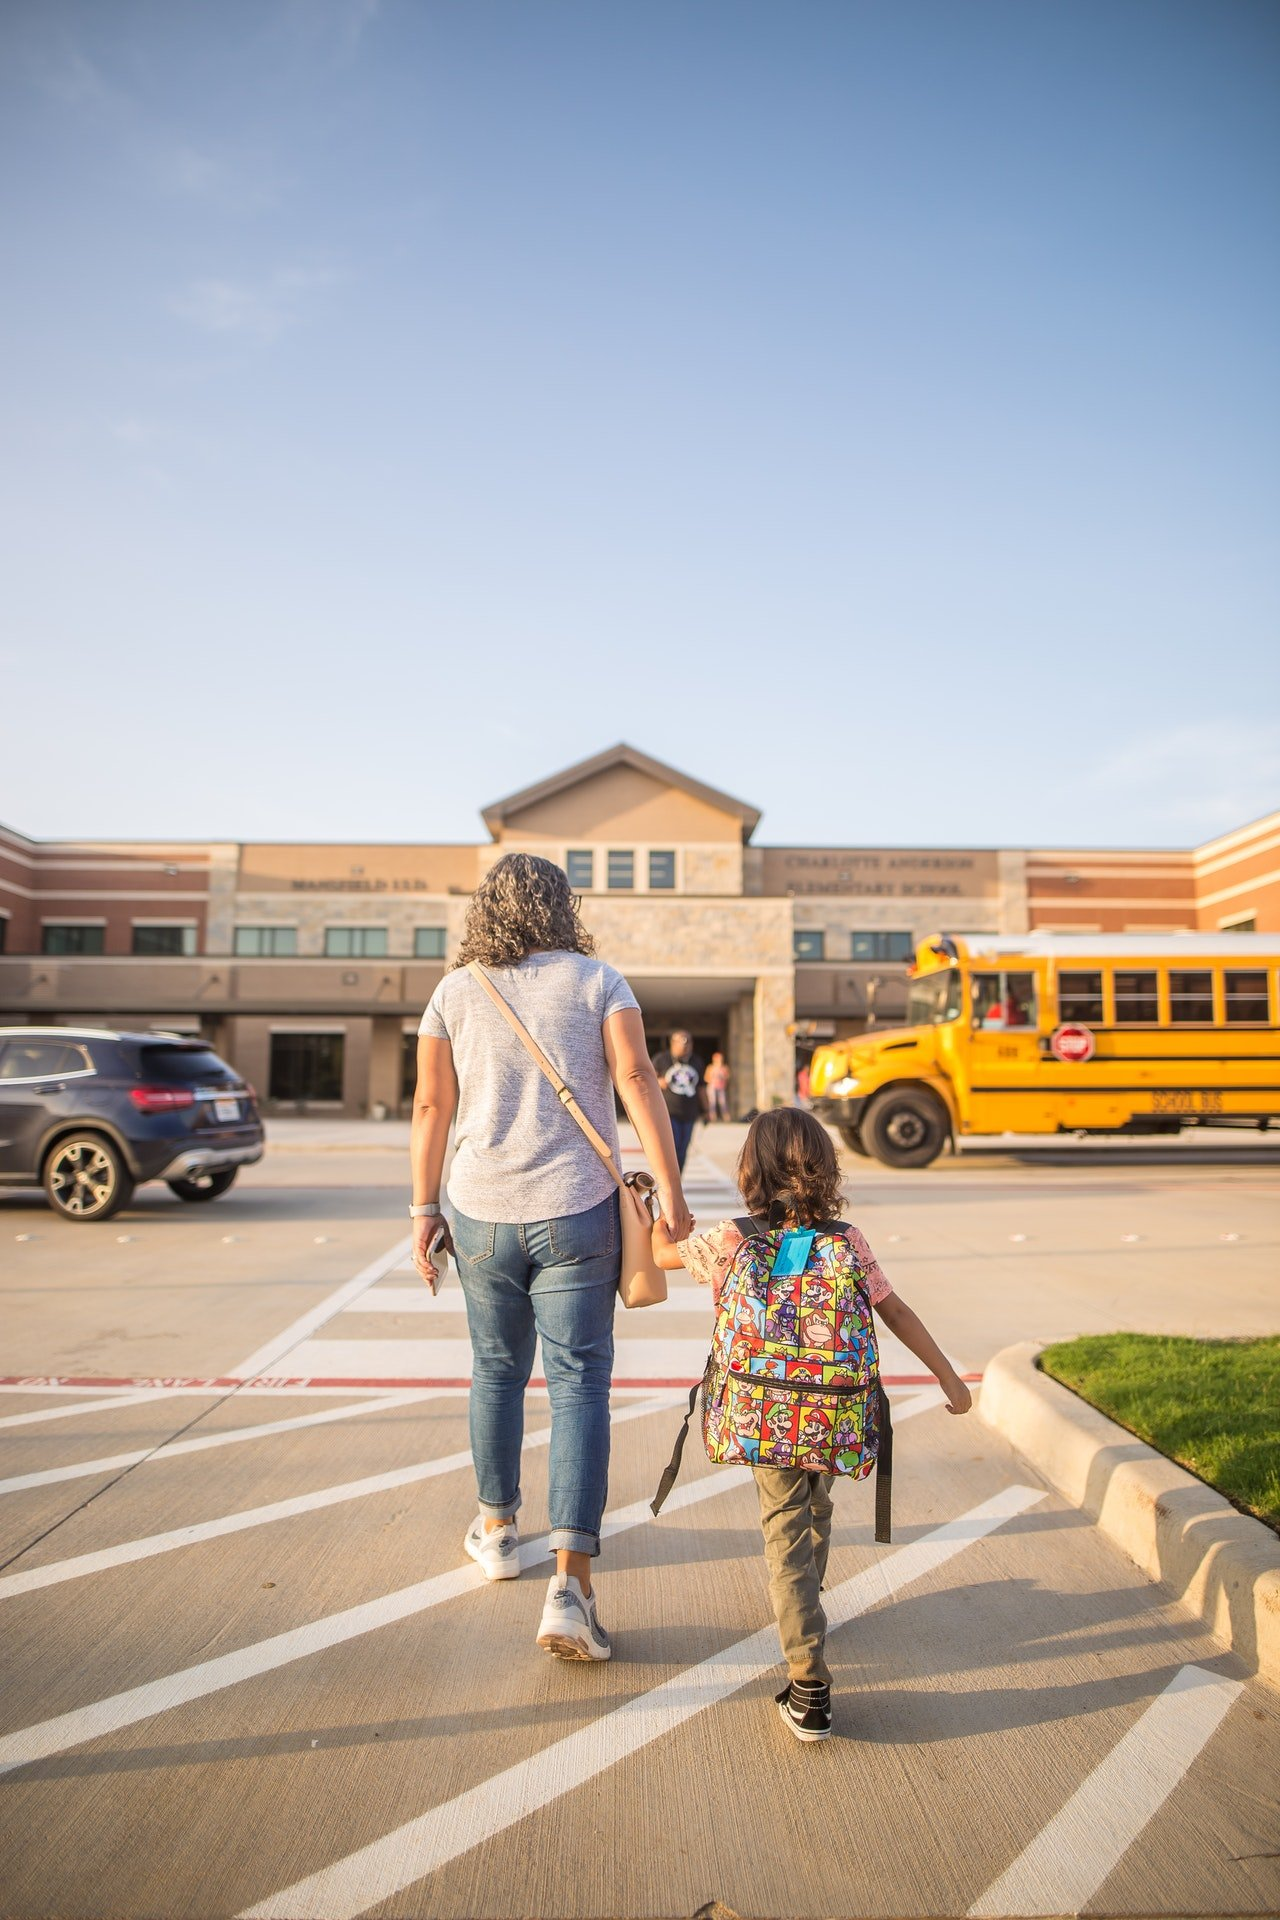 A woman and her daughter crossing the road to school | Source: Pexels